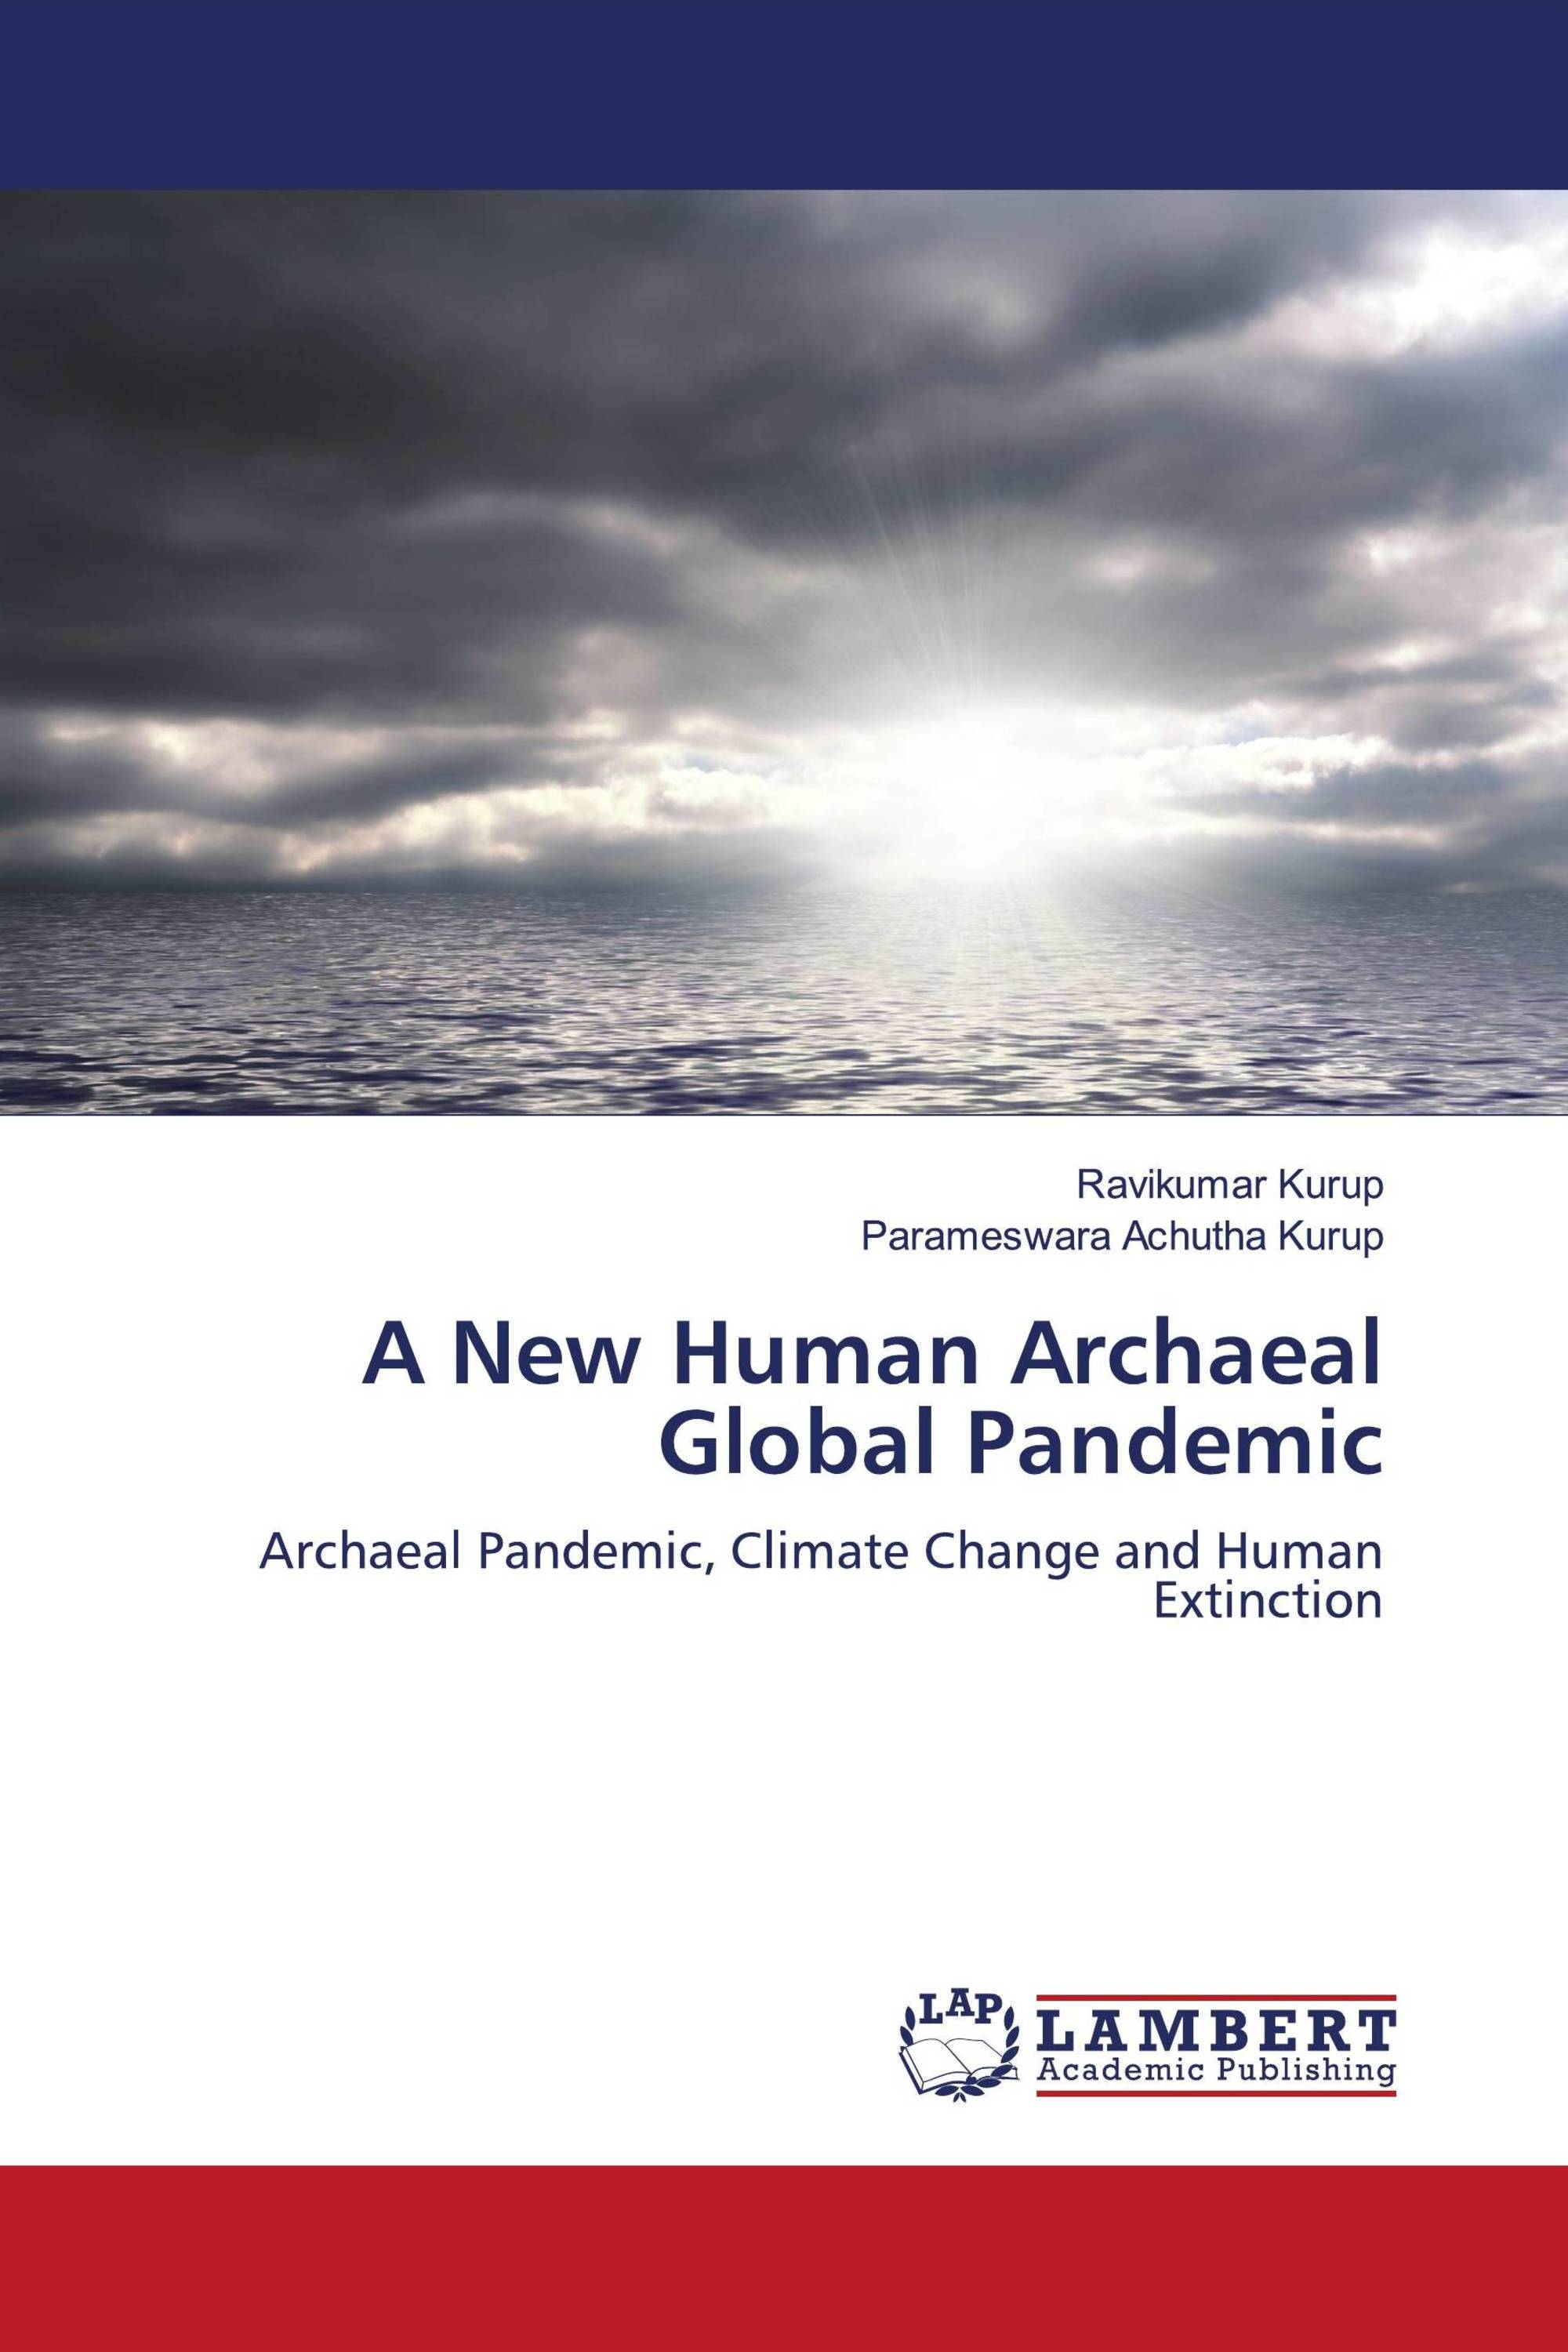 A New Human Archaeal Global Pandemic